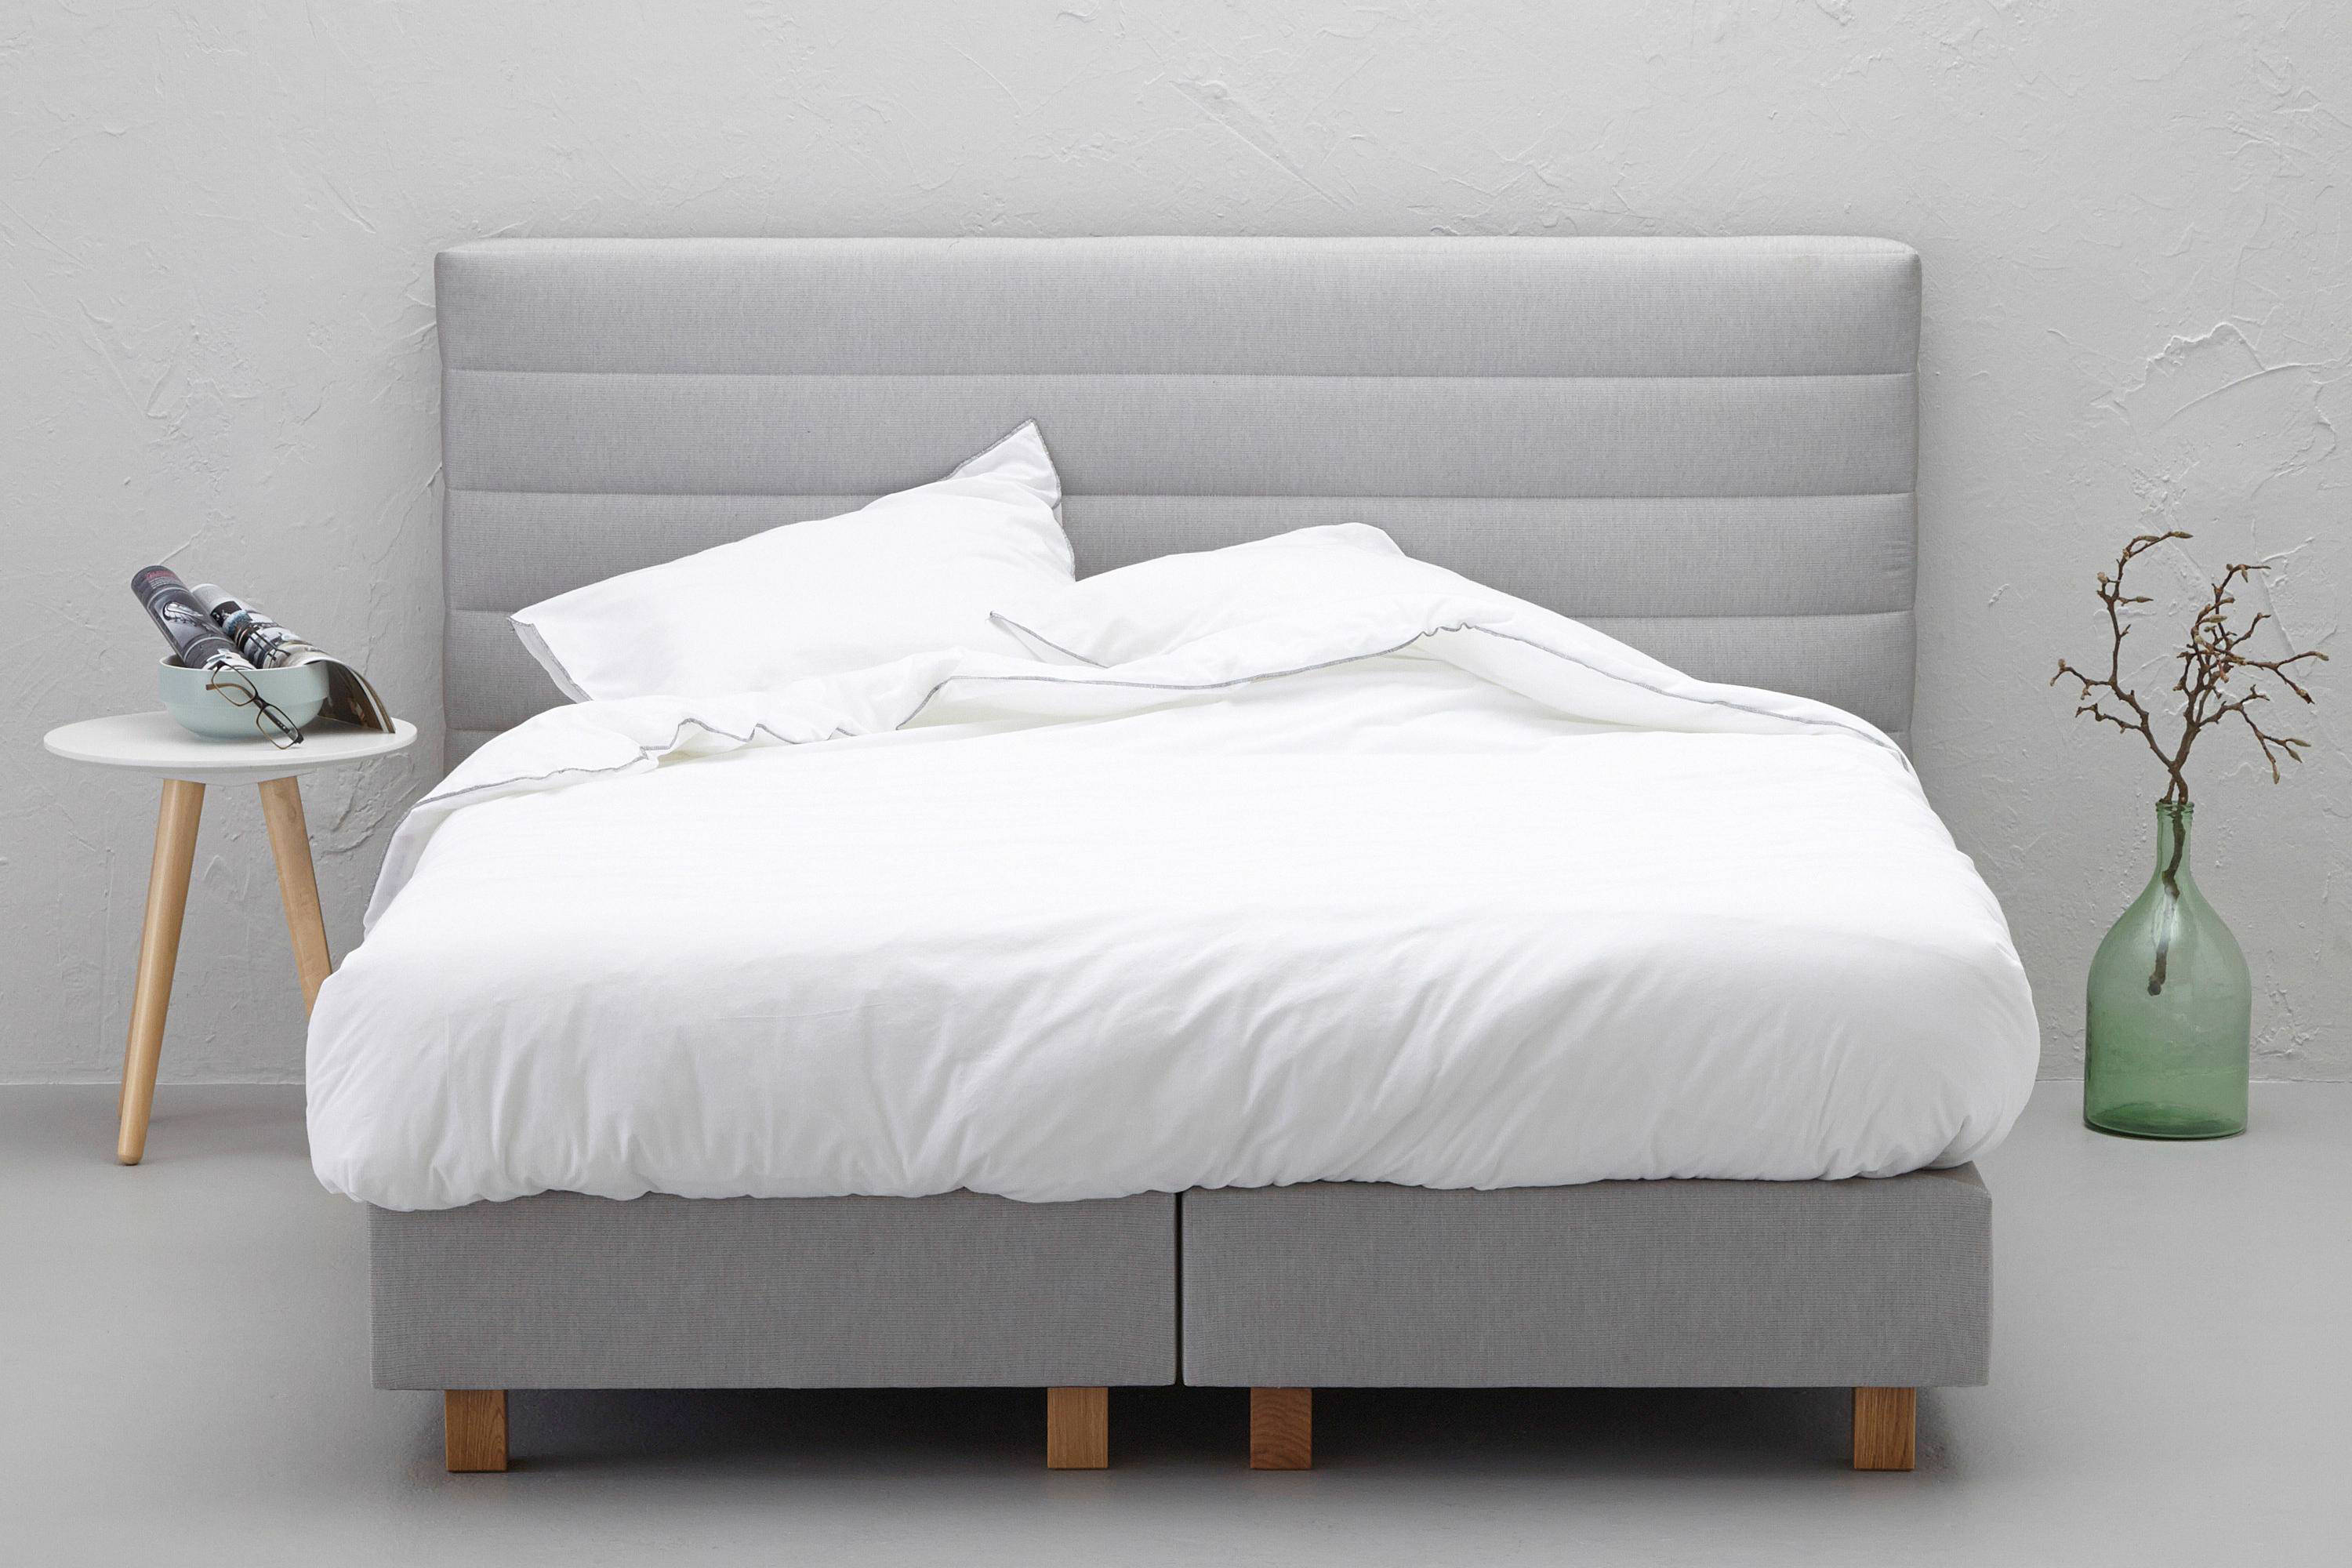 Boxspring Beste Getest 2019.Whkmp S Own Complete Boxspring Linee Wehkamp